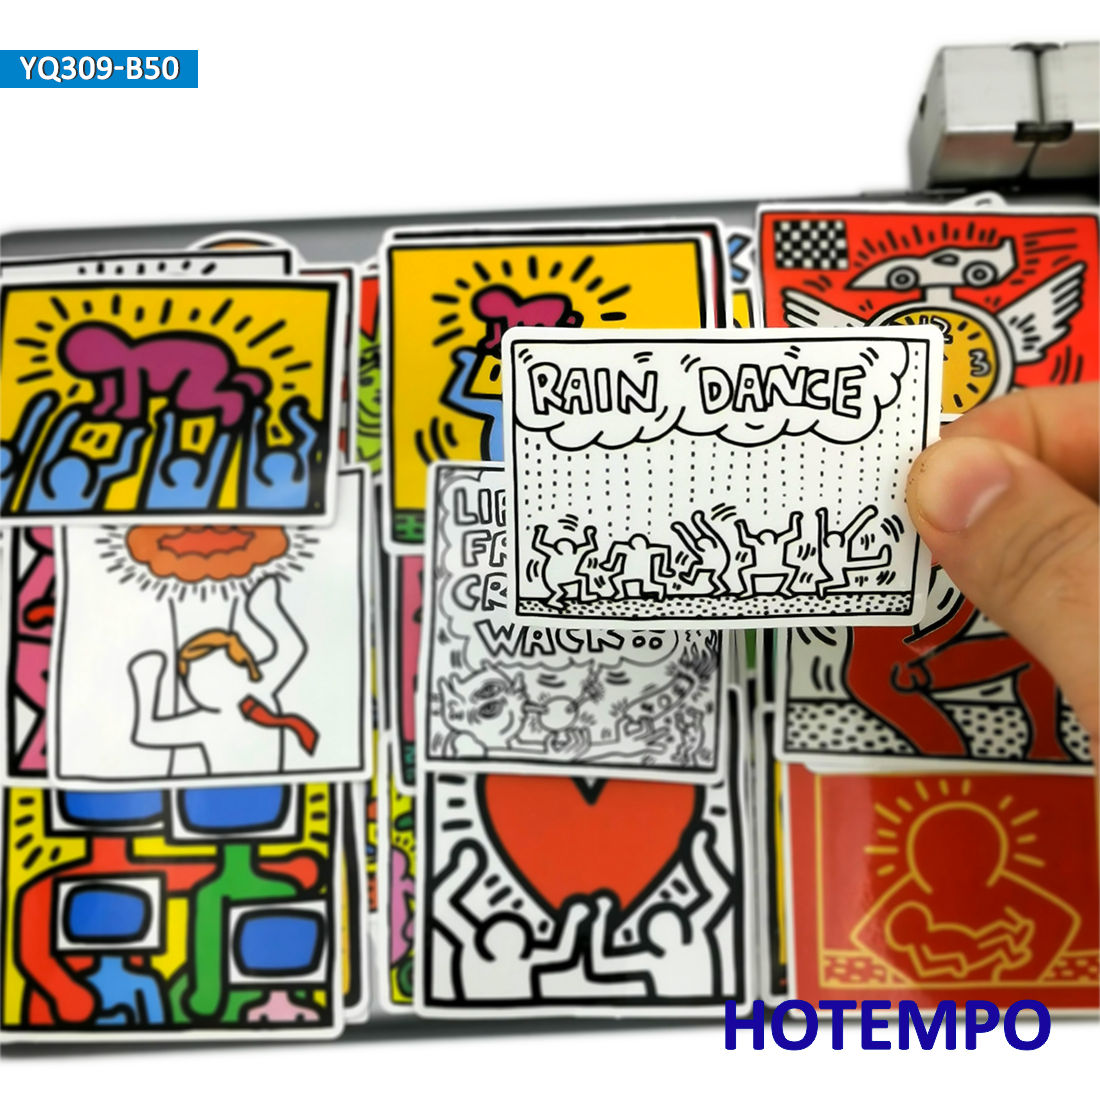 50pcs Pop Art Style Graffiti Artist Keith Haring Stickers For Mobile Phone Laptop Luggage Pad Case Skateboard Bike Moto Stickers